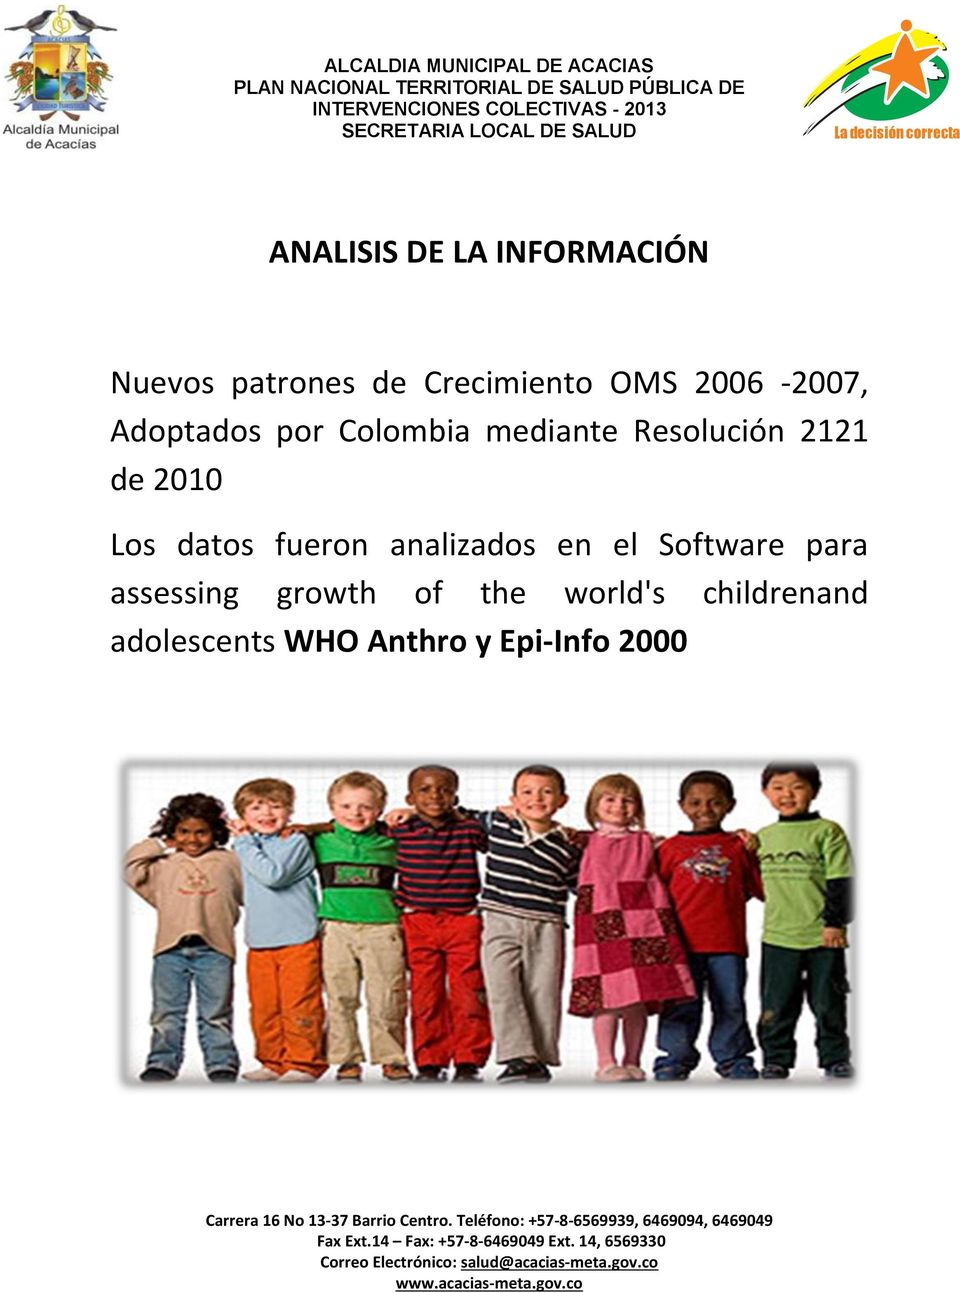 2010 Los datos fueron analizados en el Software para assessing